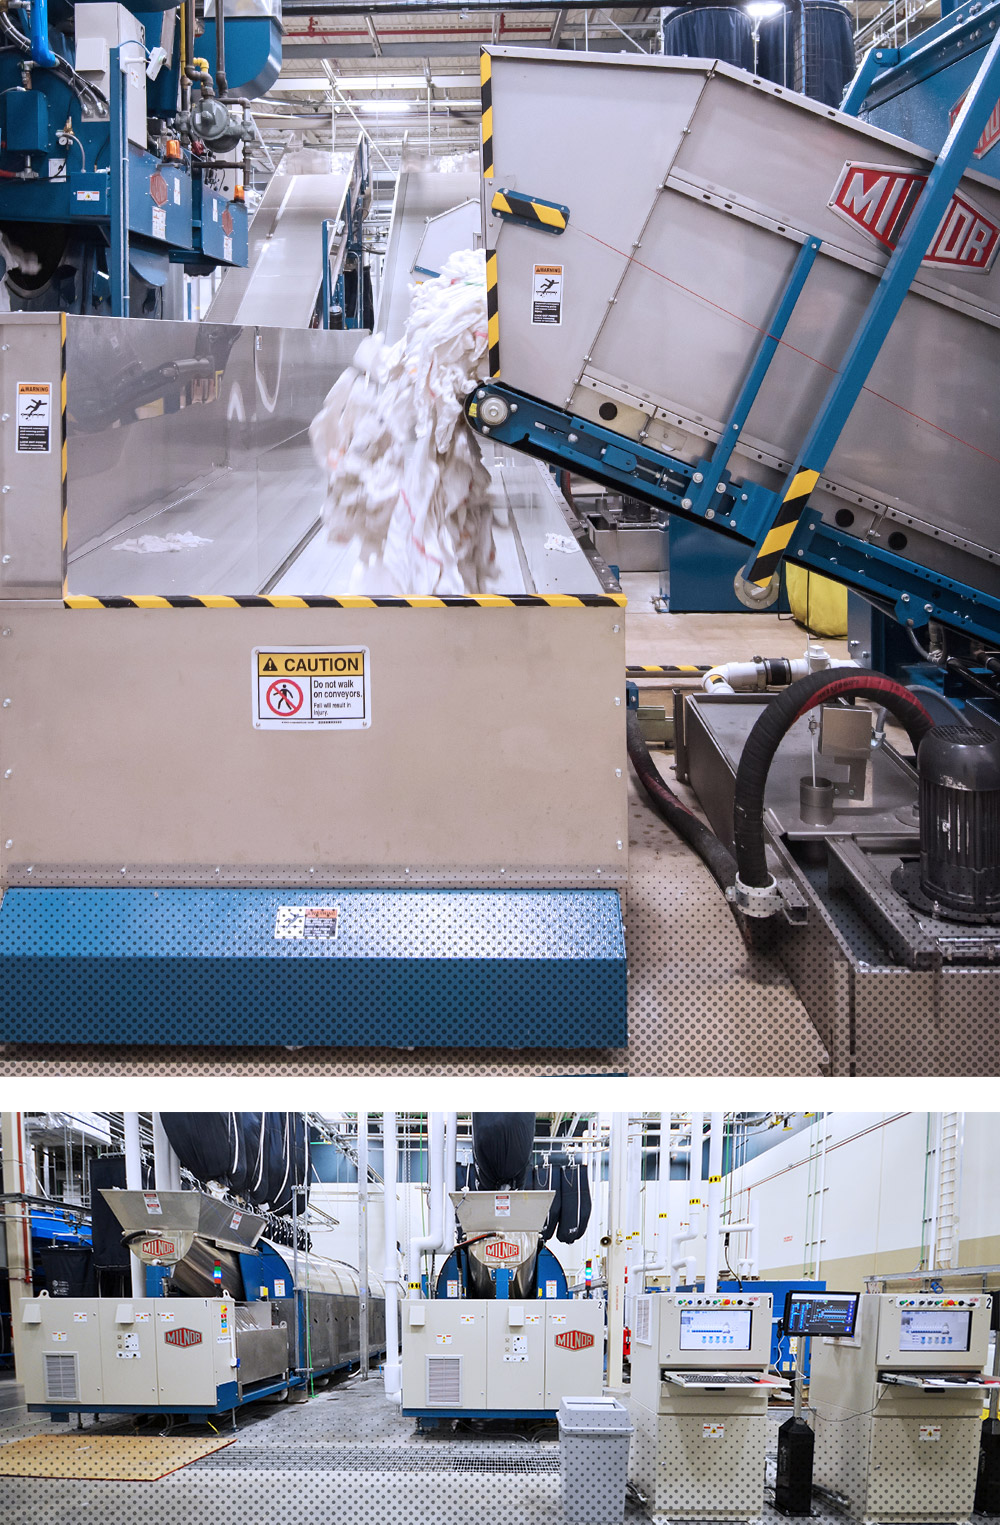 Laundry being dumped onto conveyor | On premise laundry equipment for sale